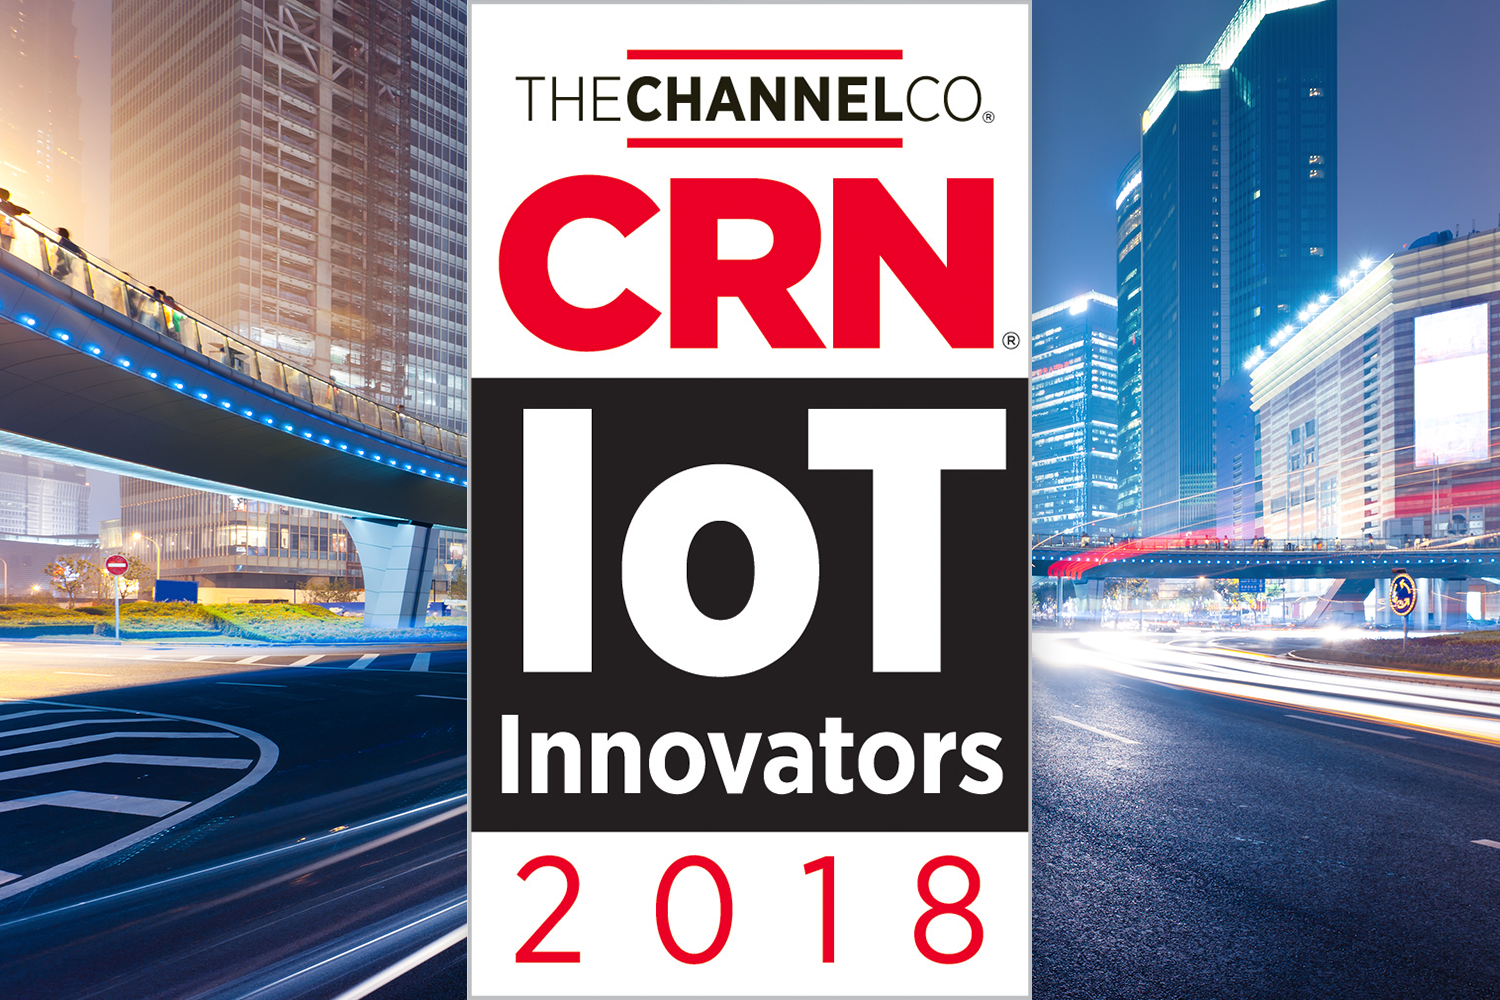 Wachter Named to 2018 CRN IoT Innovators List